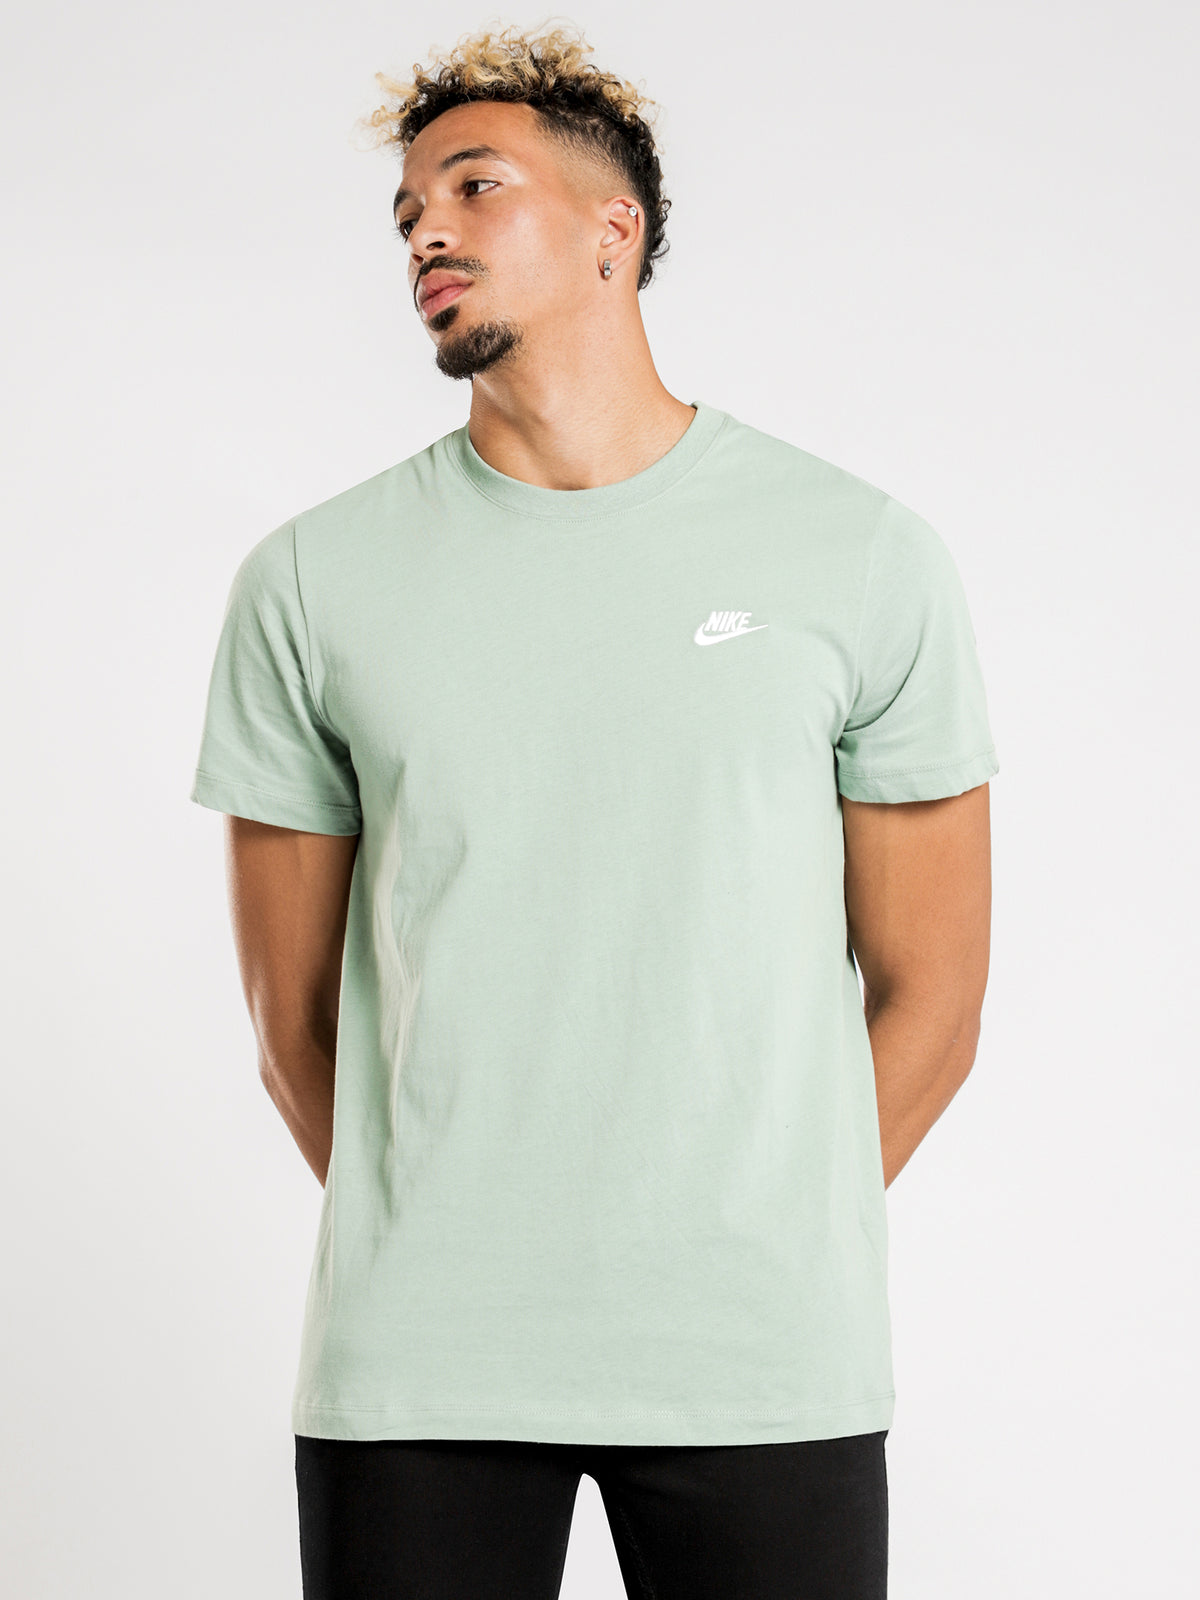 NSW Club T-Shirt in Green & White